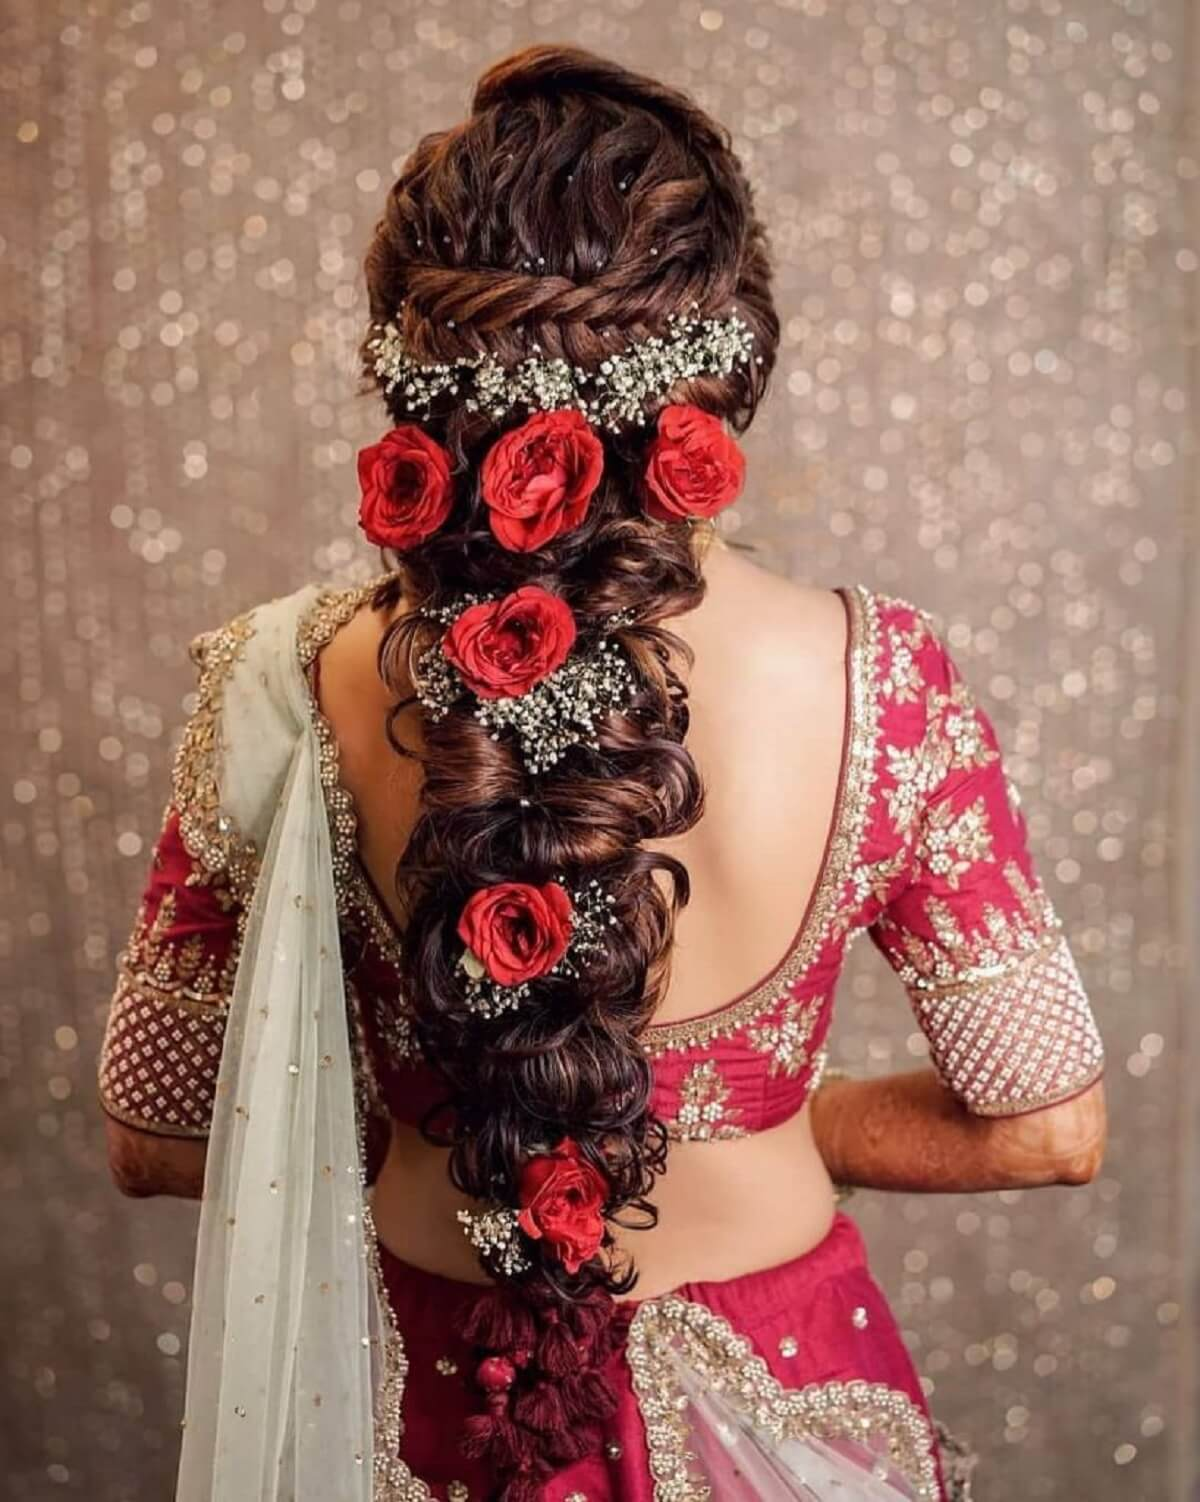 Majestic Floral Bridal Hair Accessories To Make You Look Like A Flowery Queen At Your Wedding!